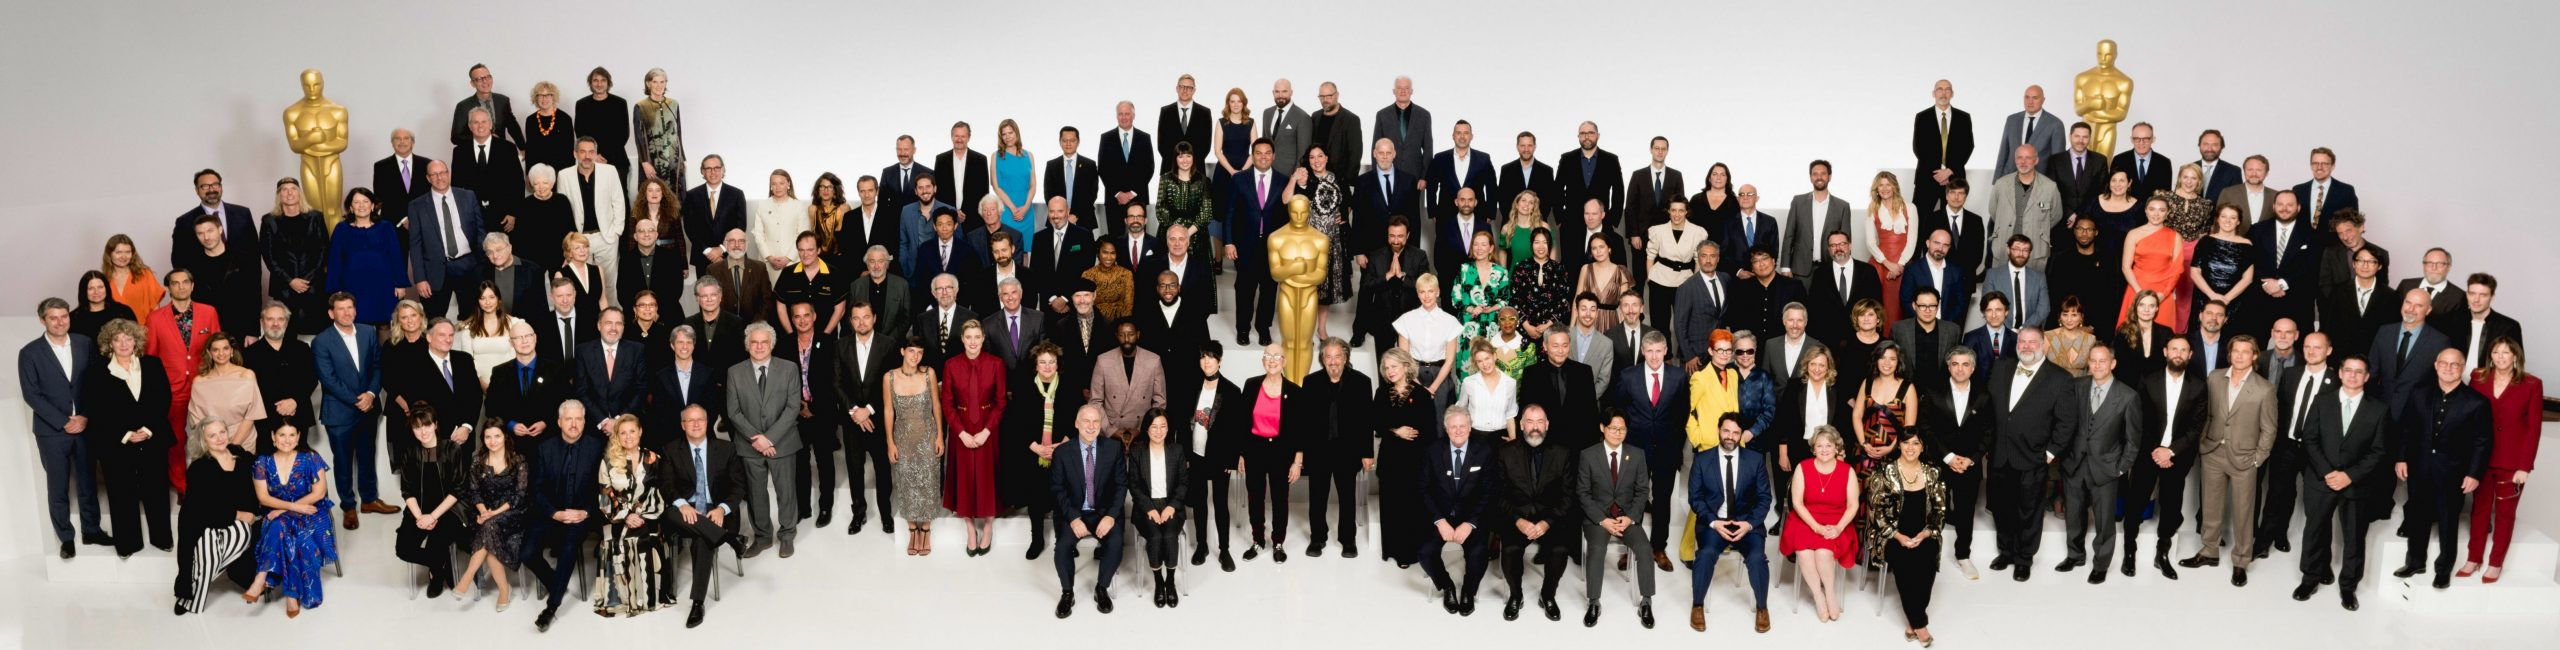 Oscars 2020 all stars